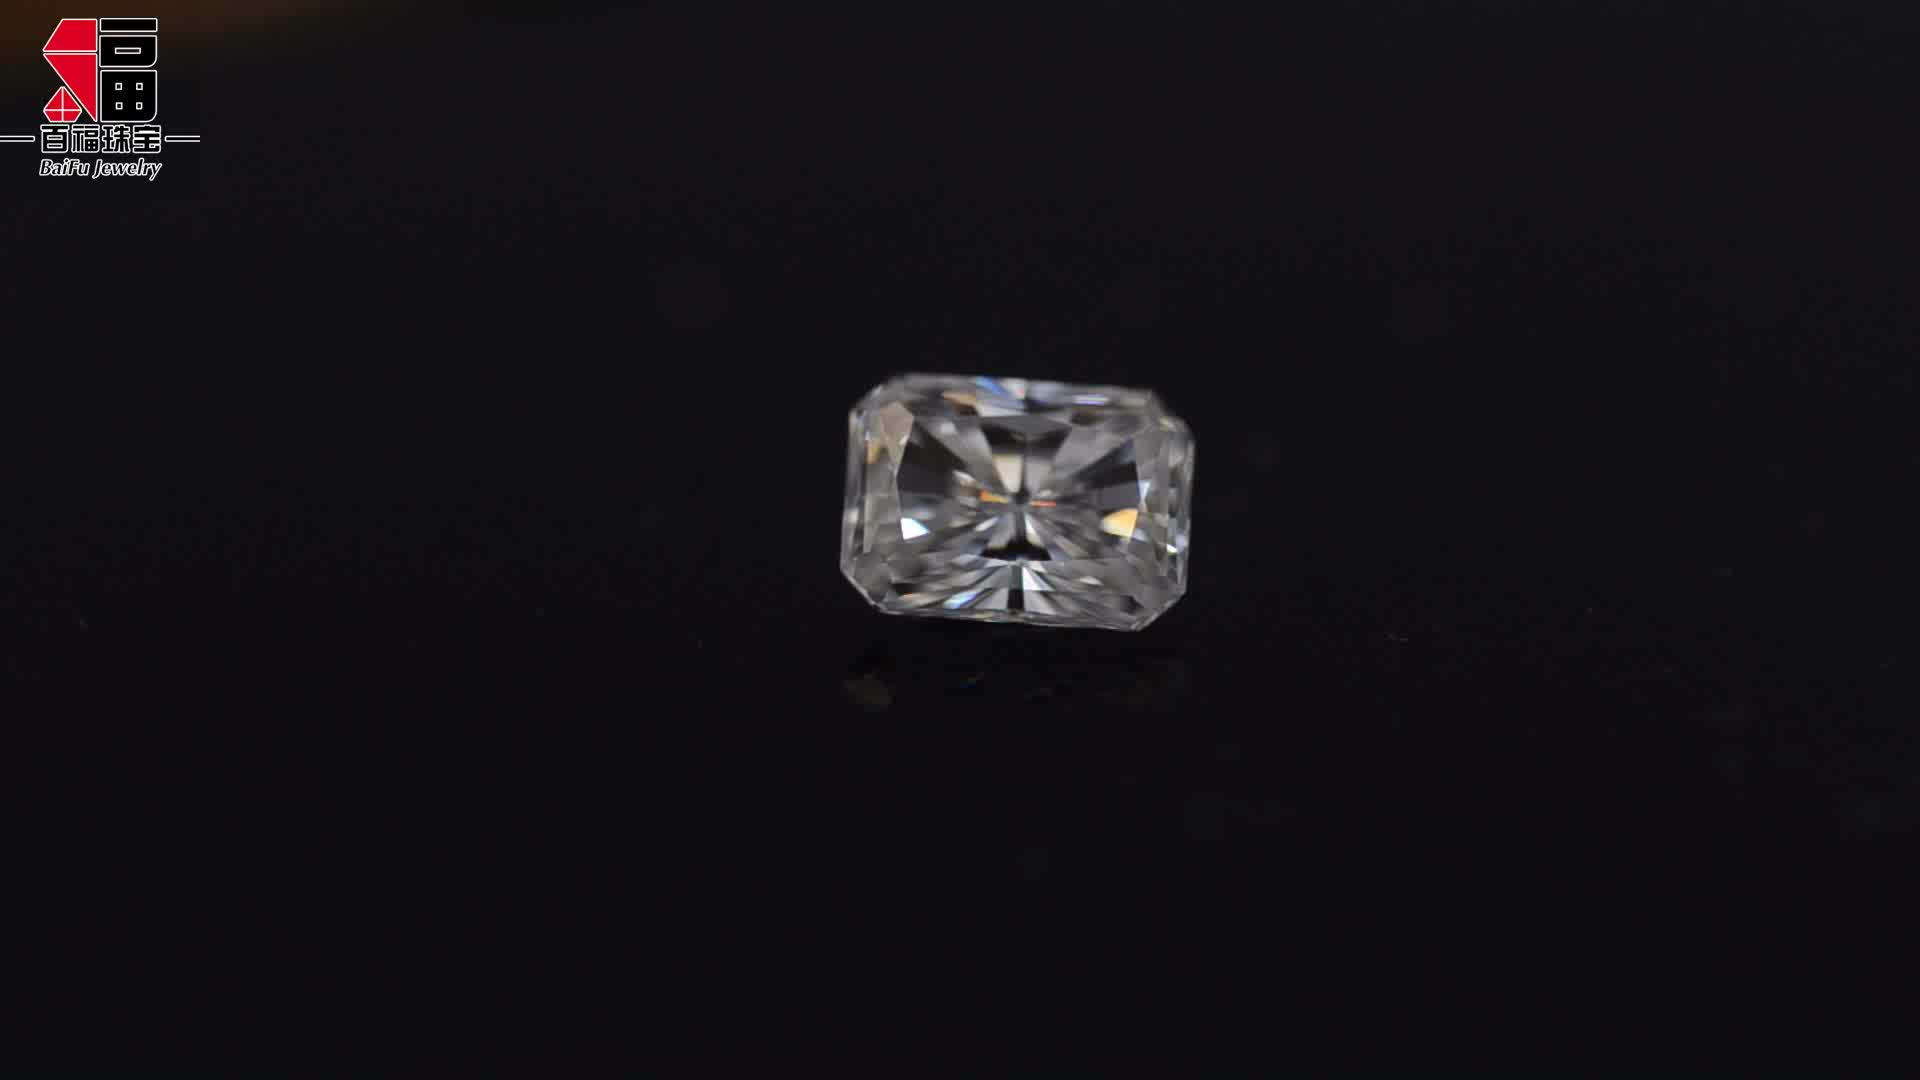 fancy pin largest diamond the def cullinan to dream come carat auction color intense blue